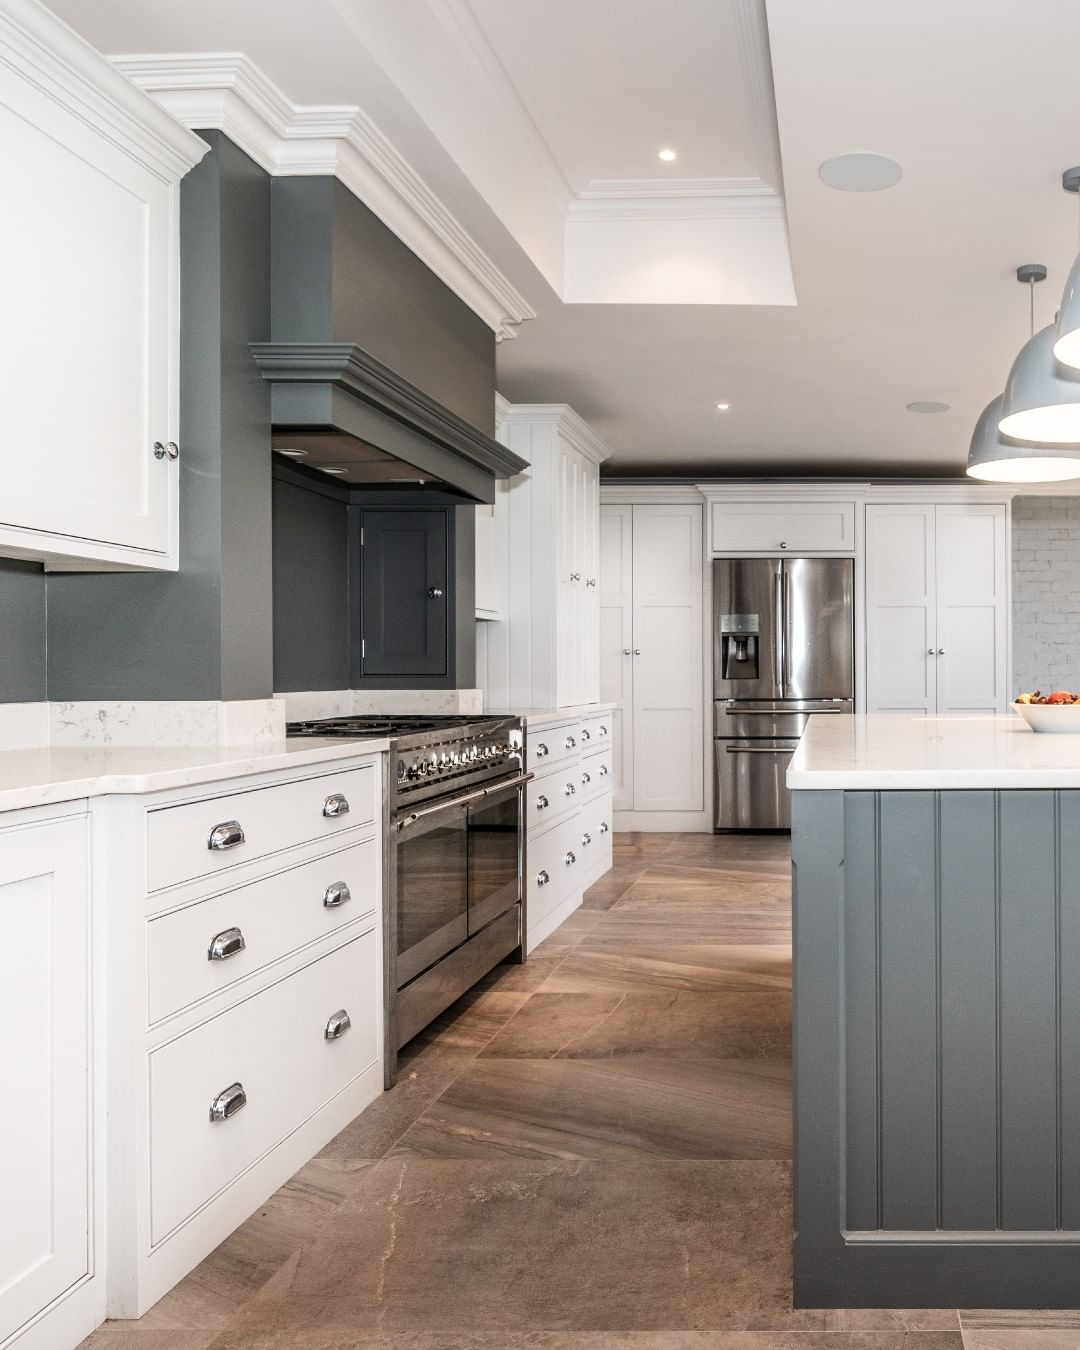 Handmade Kitchen Company On Instagram Grey Kitchens Are On Trend Right Now Check Out This Light And Dark Gr Grey Kitchens Handmade Kitchens Two Tone Kitchen